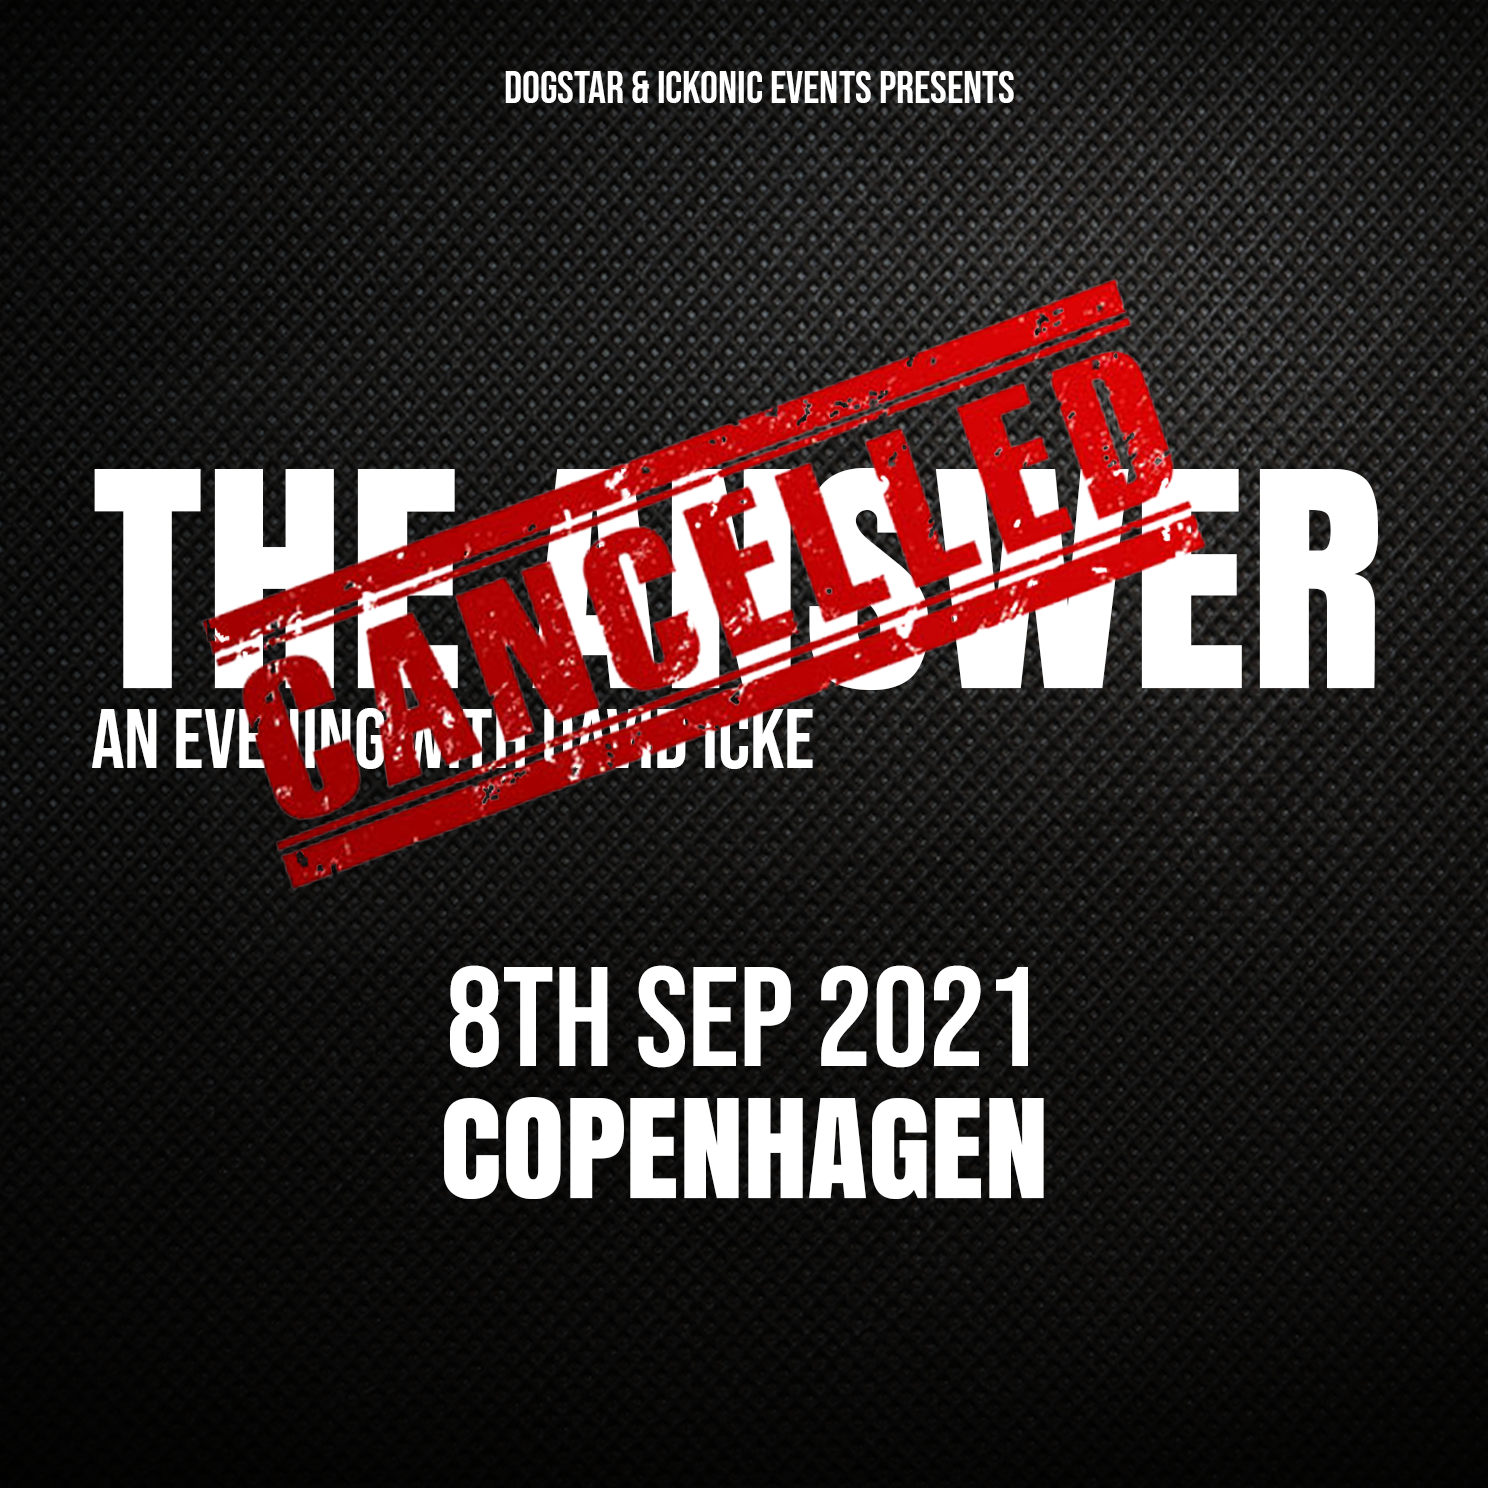 David Icke - Live In Copenhagen - The Answer - Wednesday 8 September